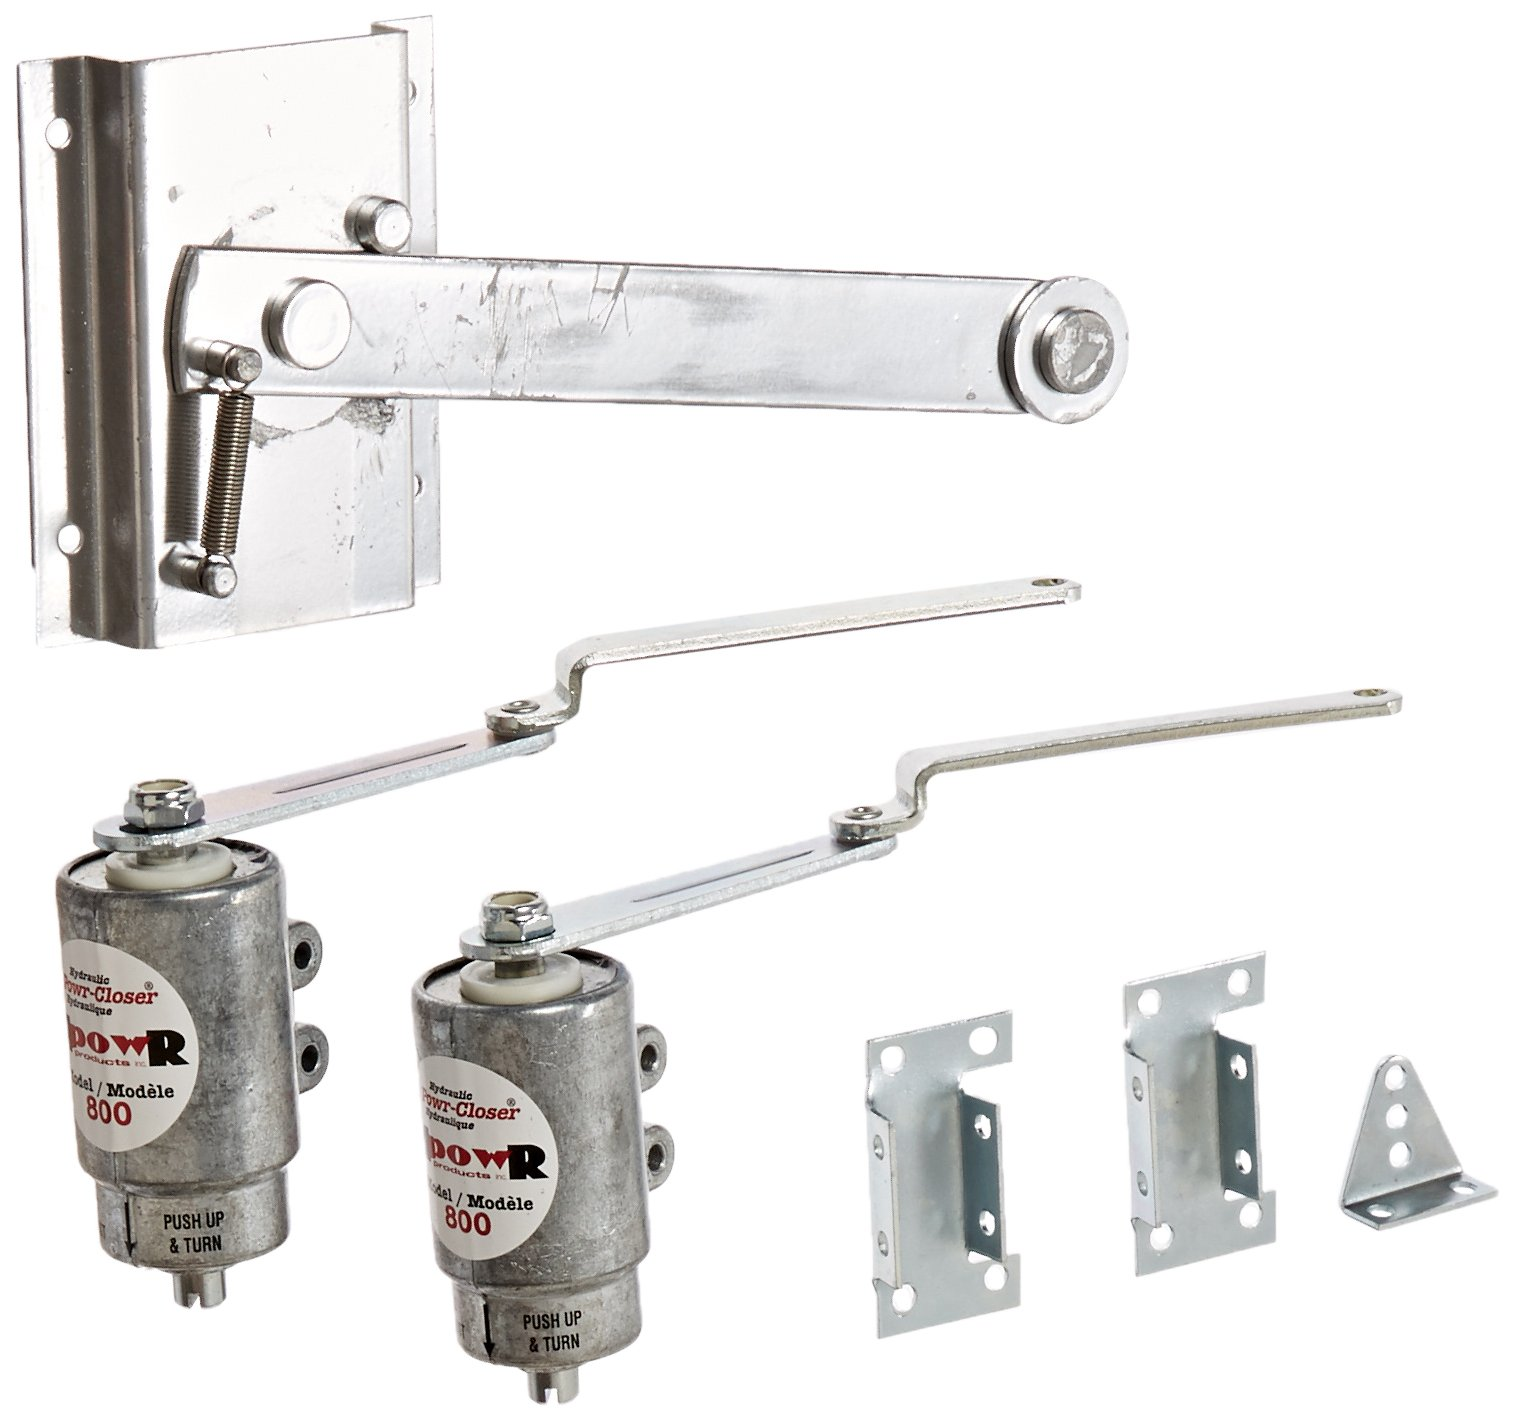 JUSTRITE MANUFACTURING 25926 Conversion Kit for Safety Cabinet to Convert Doors from Manual-Close to Self-Close